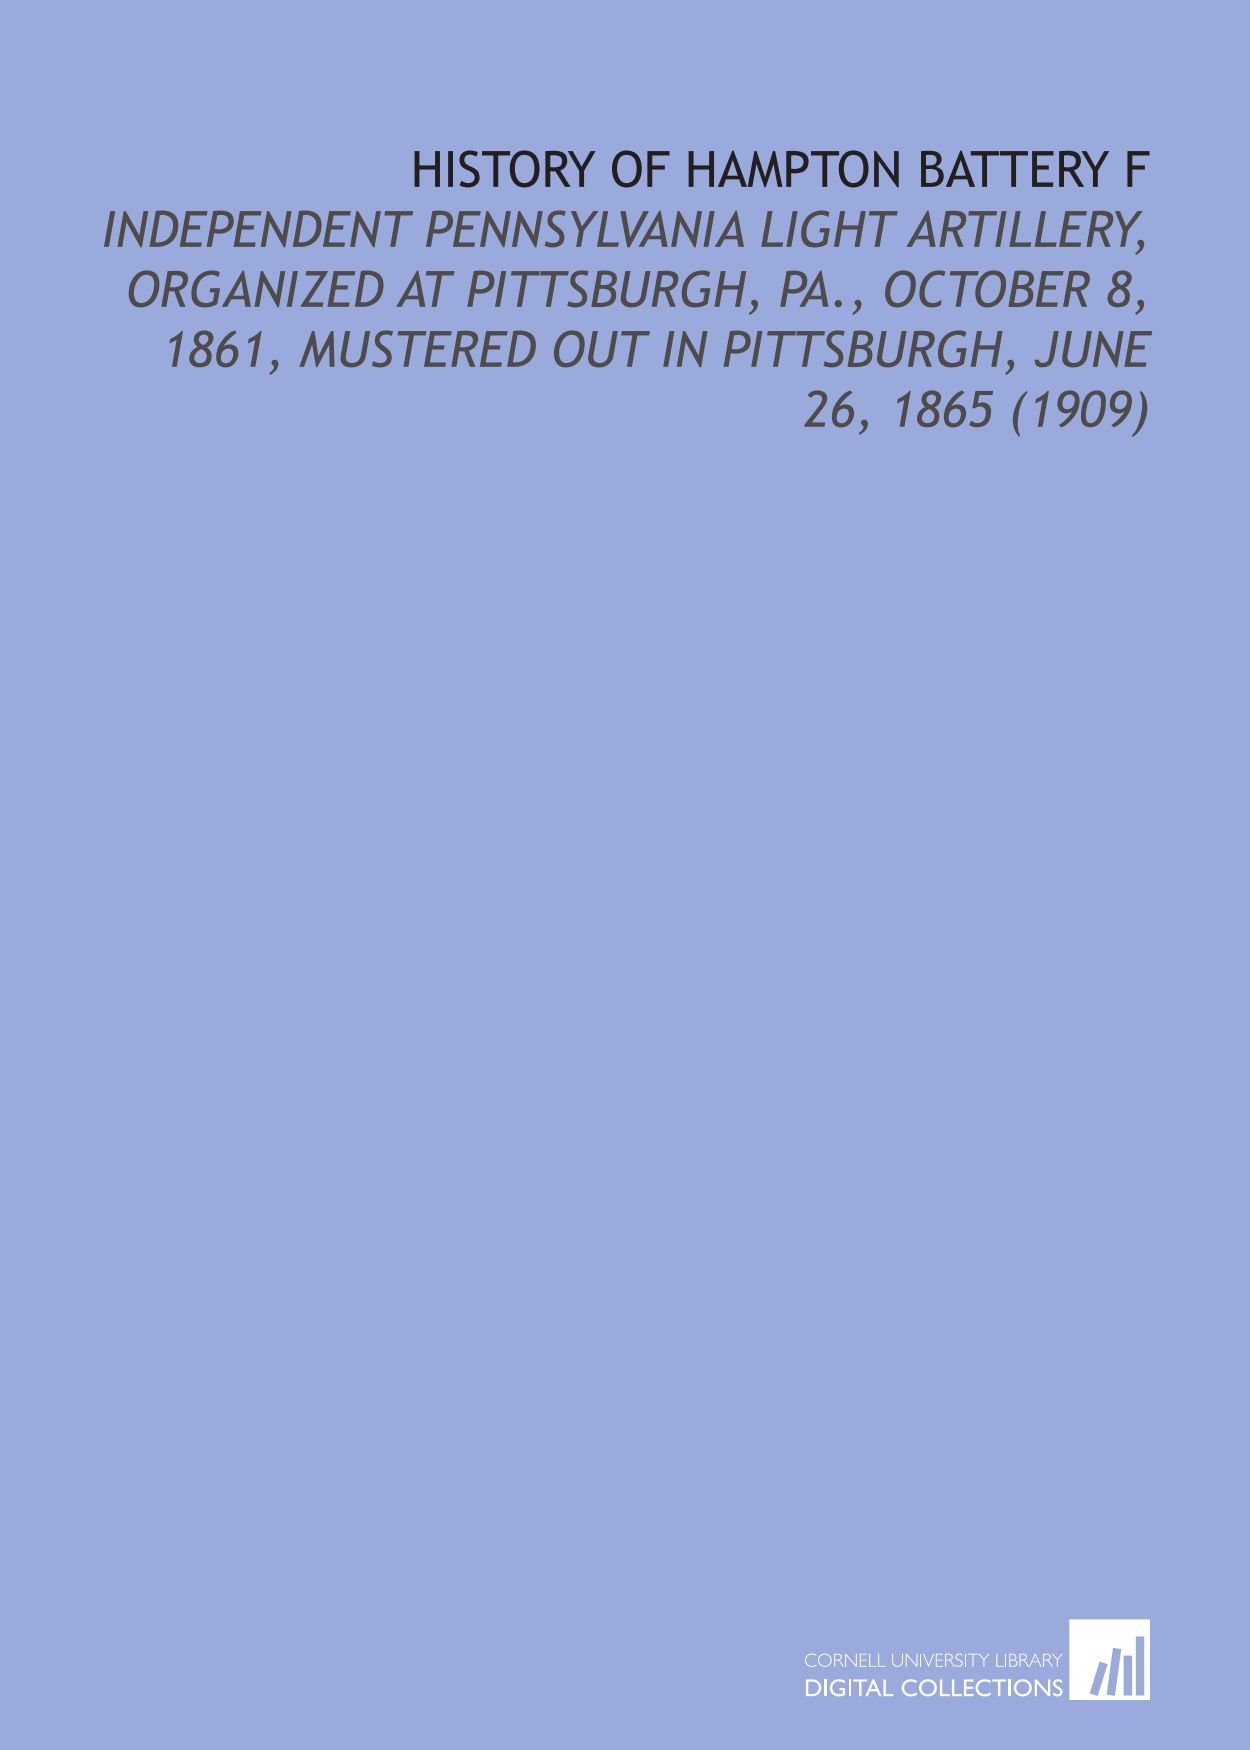 Download History of Hampton Battery F: Independent Pennsylvania Light Artillery, Organized At Pittsburgh, Pa., October 8, 1861, Mustered Out in Pittsburgh, June 26, 1865 (1909) Text fb2 book